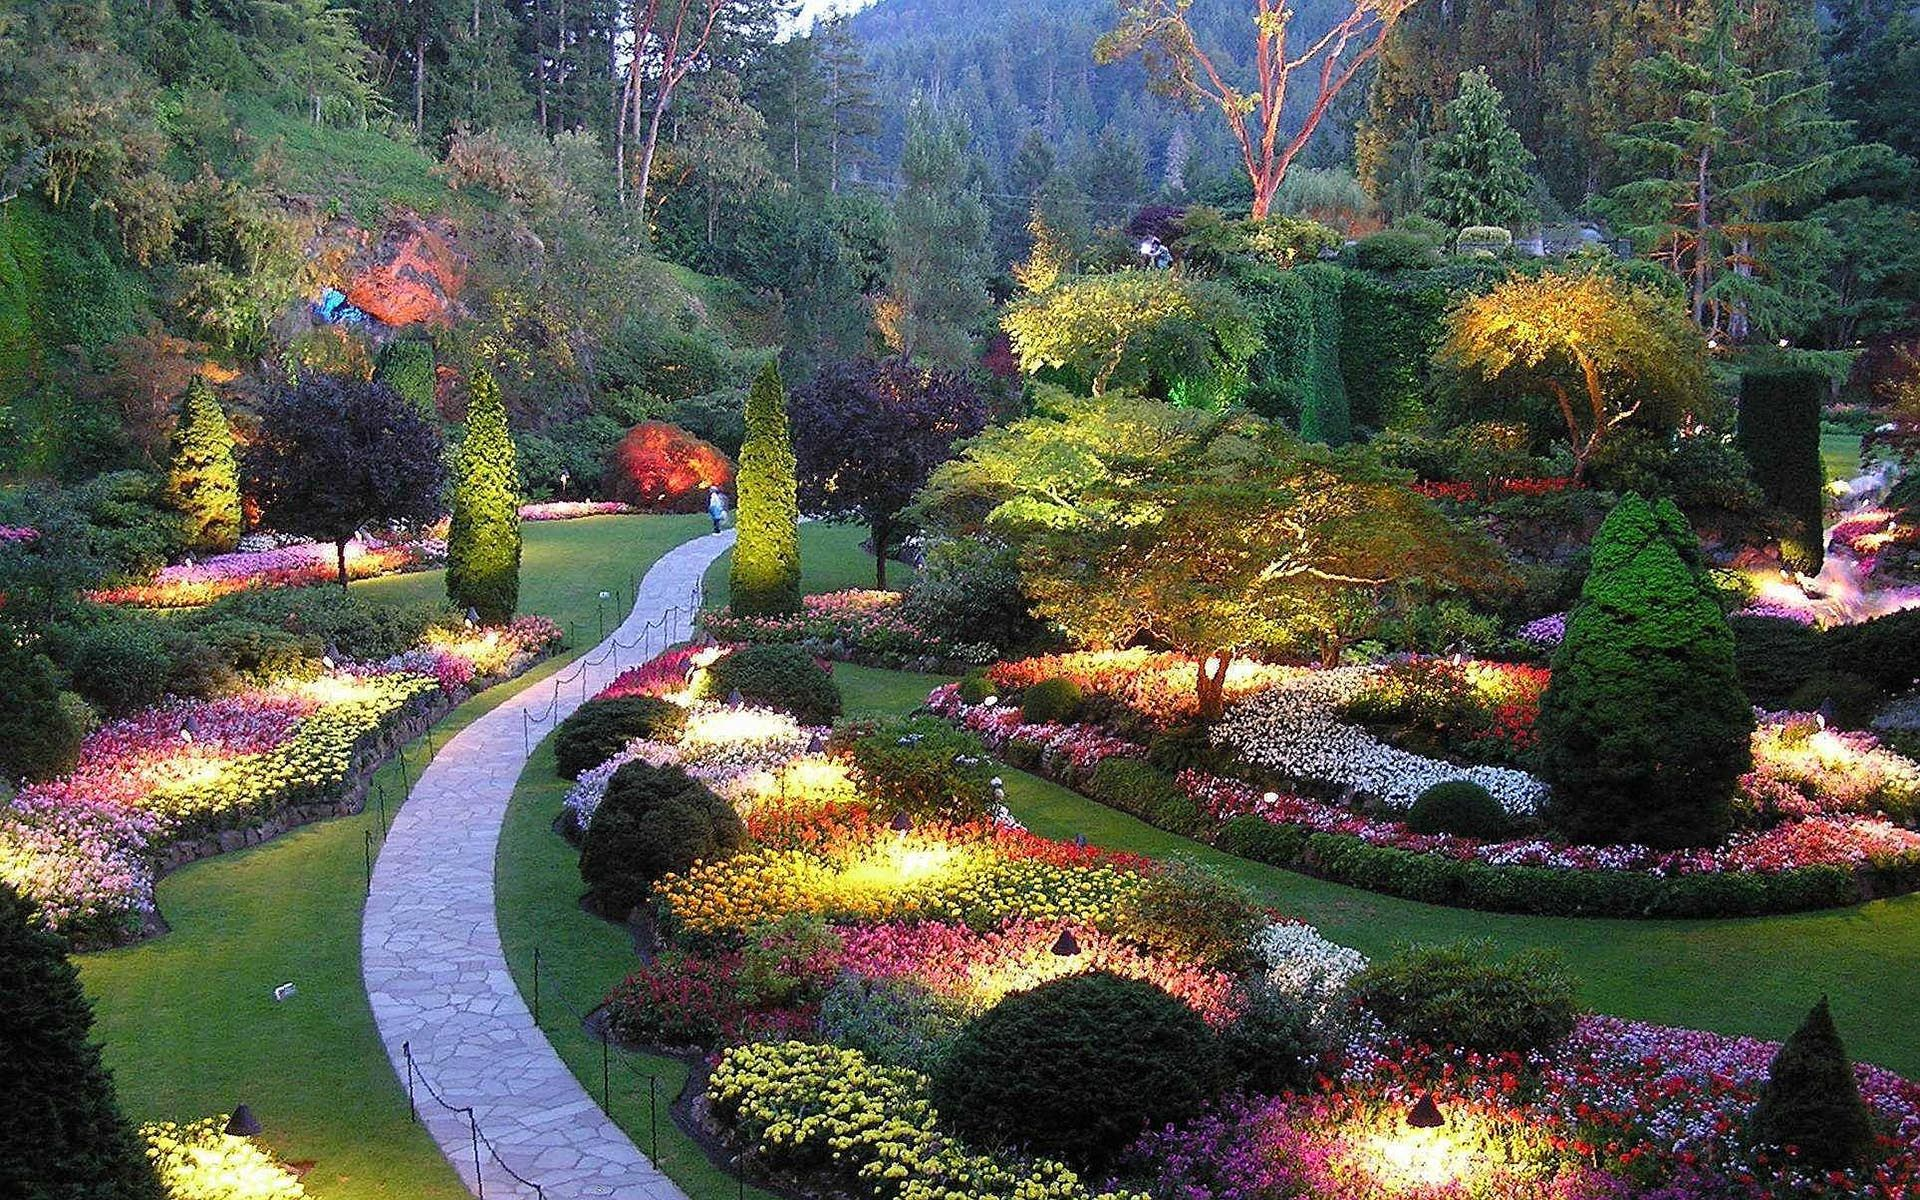 b097490067b6186af95926e4194d56ce - Bed And Breakfast Near Butchart Gardens Victoria Bc